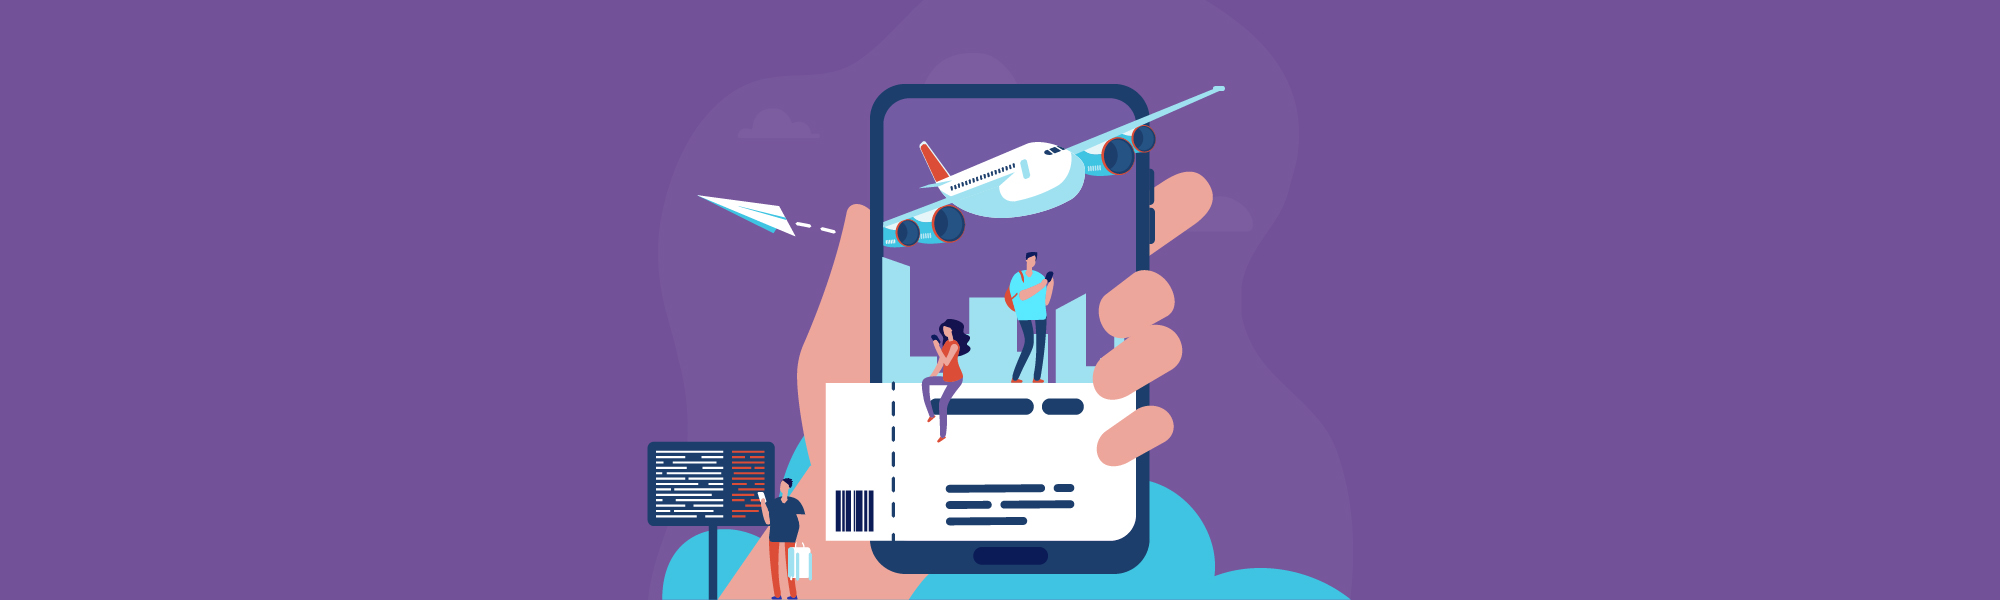 Investing in Technology During Uncertain Times: Travel Industry Examples